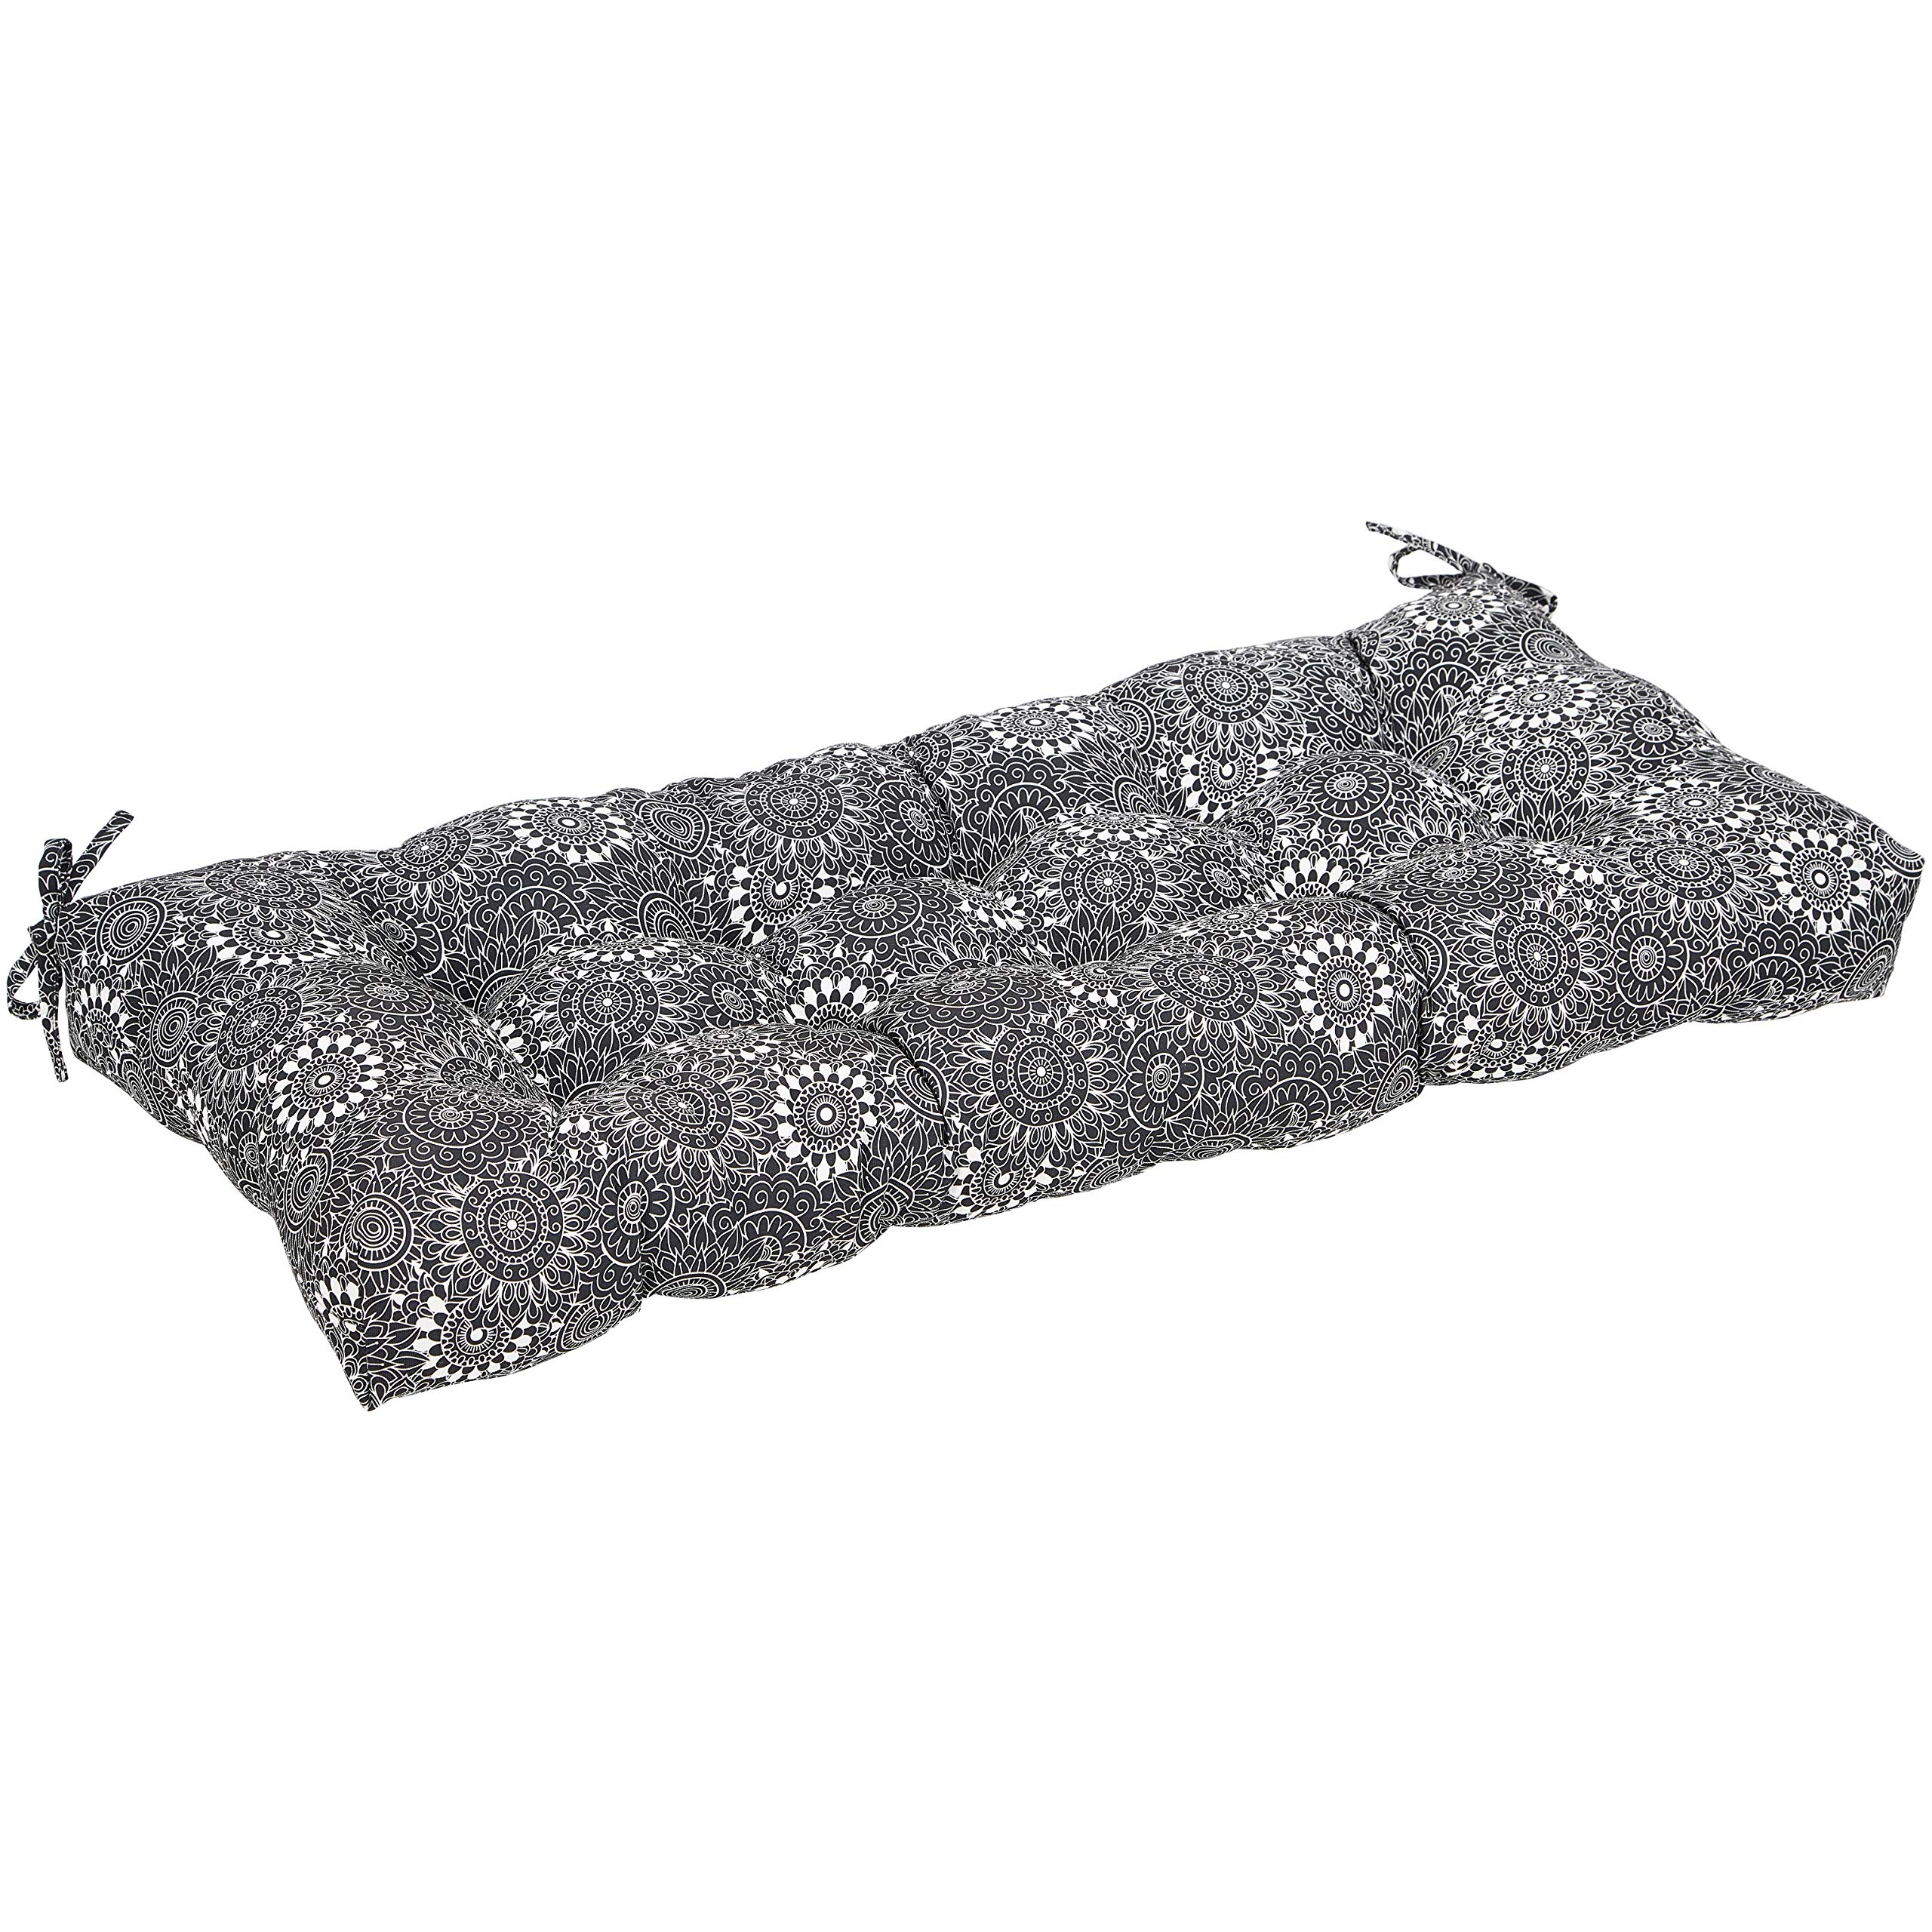 AmazonBasics Bench Patio Cushion- Poly Fiber - Black Floral